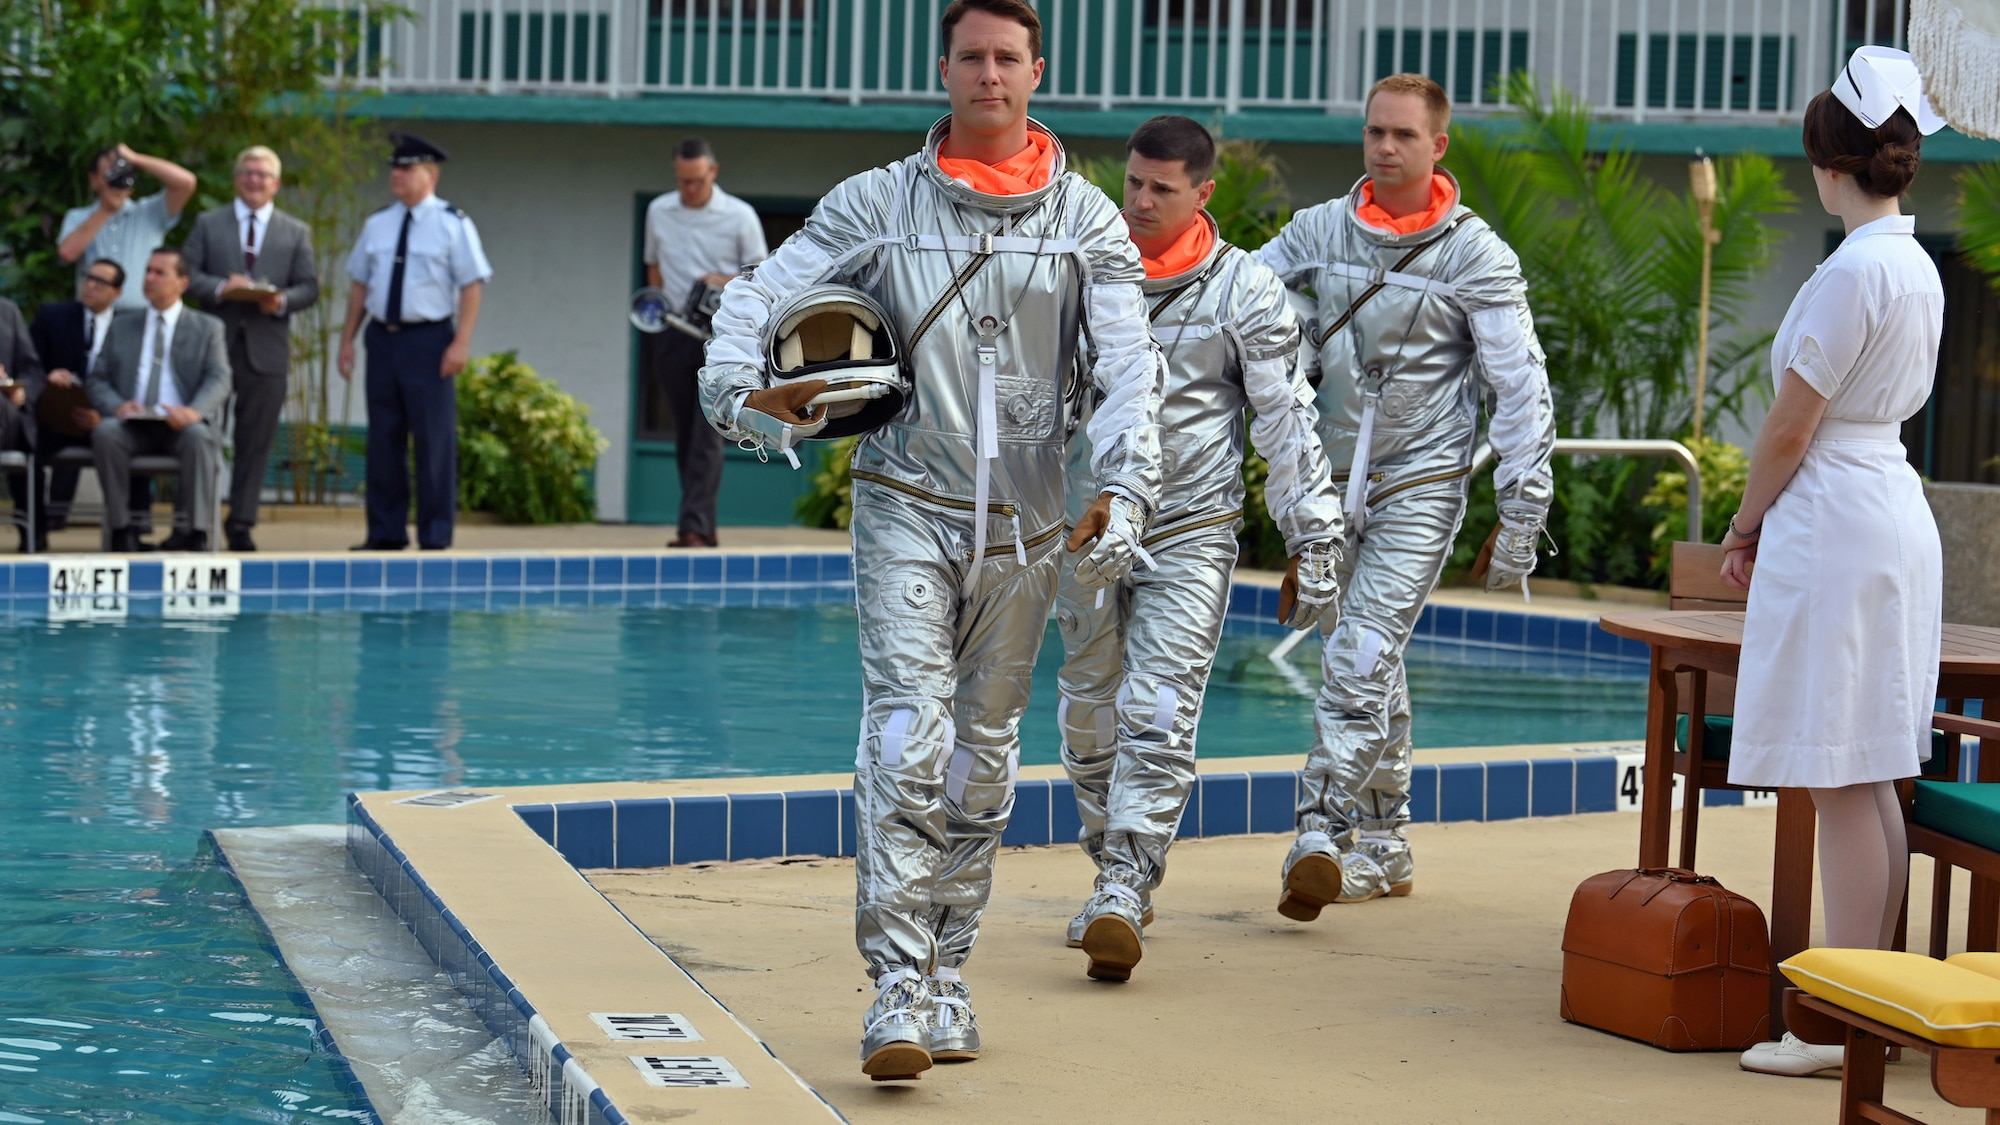 Mercury Seven astronauts (L to R), Alan Shepard played by Jake McDorman, Gus Grissom played by Michael Trotter and John Glenn played by Patrick J. Adams, prior to performing an emergency procedure demonstration in a swimming pool for Dr. Jerome Wiesner and other members of the President's Science Advisory Committee (not pictured) in National Geographic's THE RIGHT STUFF streaming on Disney+. (Credit: National Geographic/Gene Page)